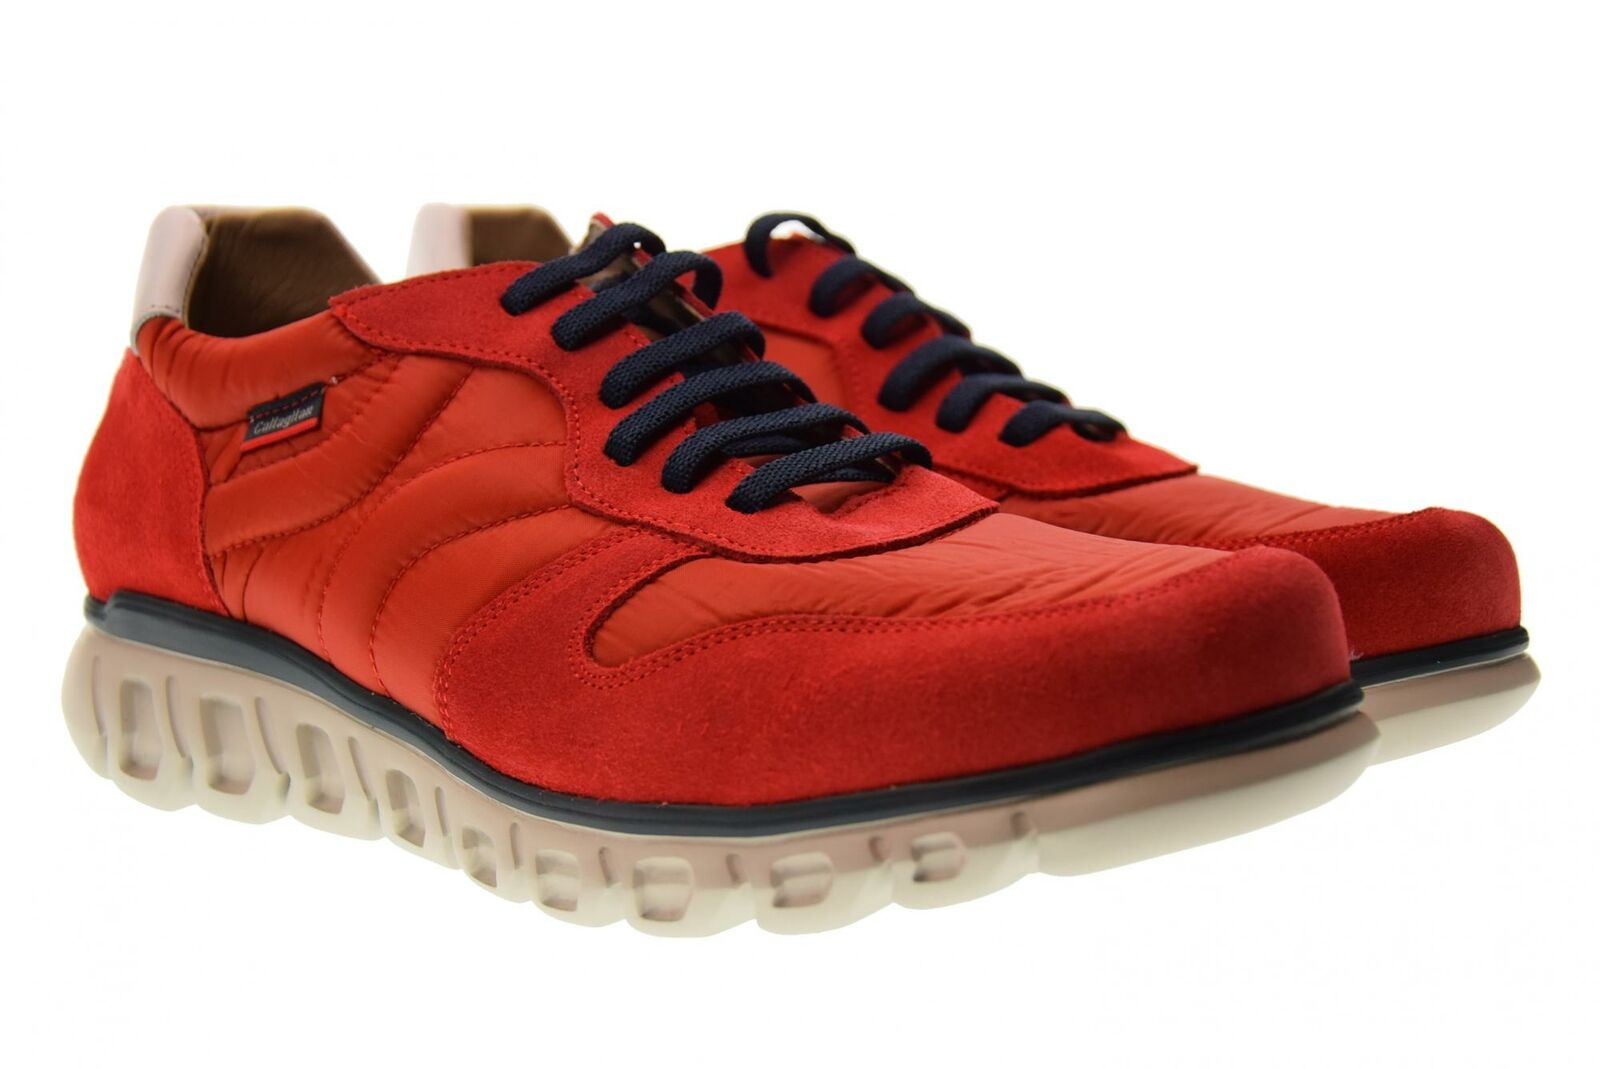 Callaghan P19us men's shoes low sneakers 12903 RED